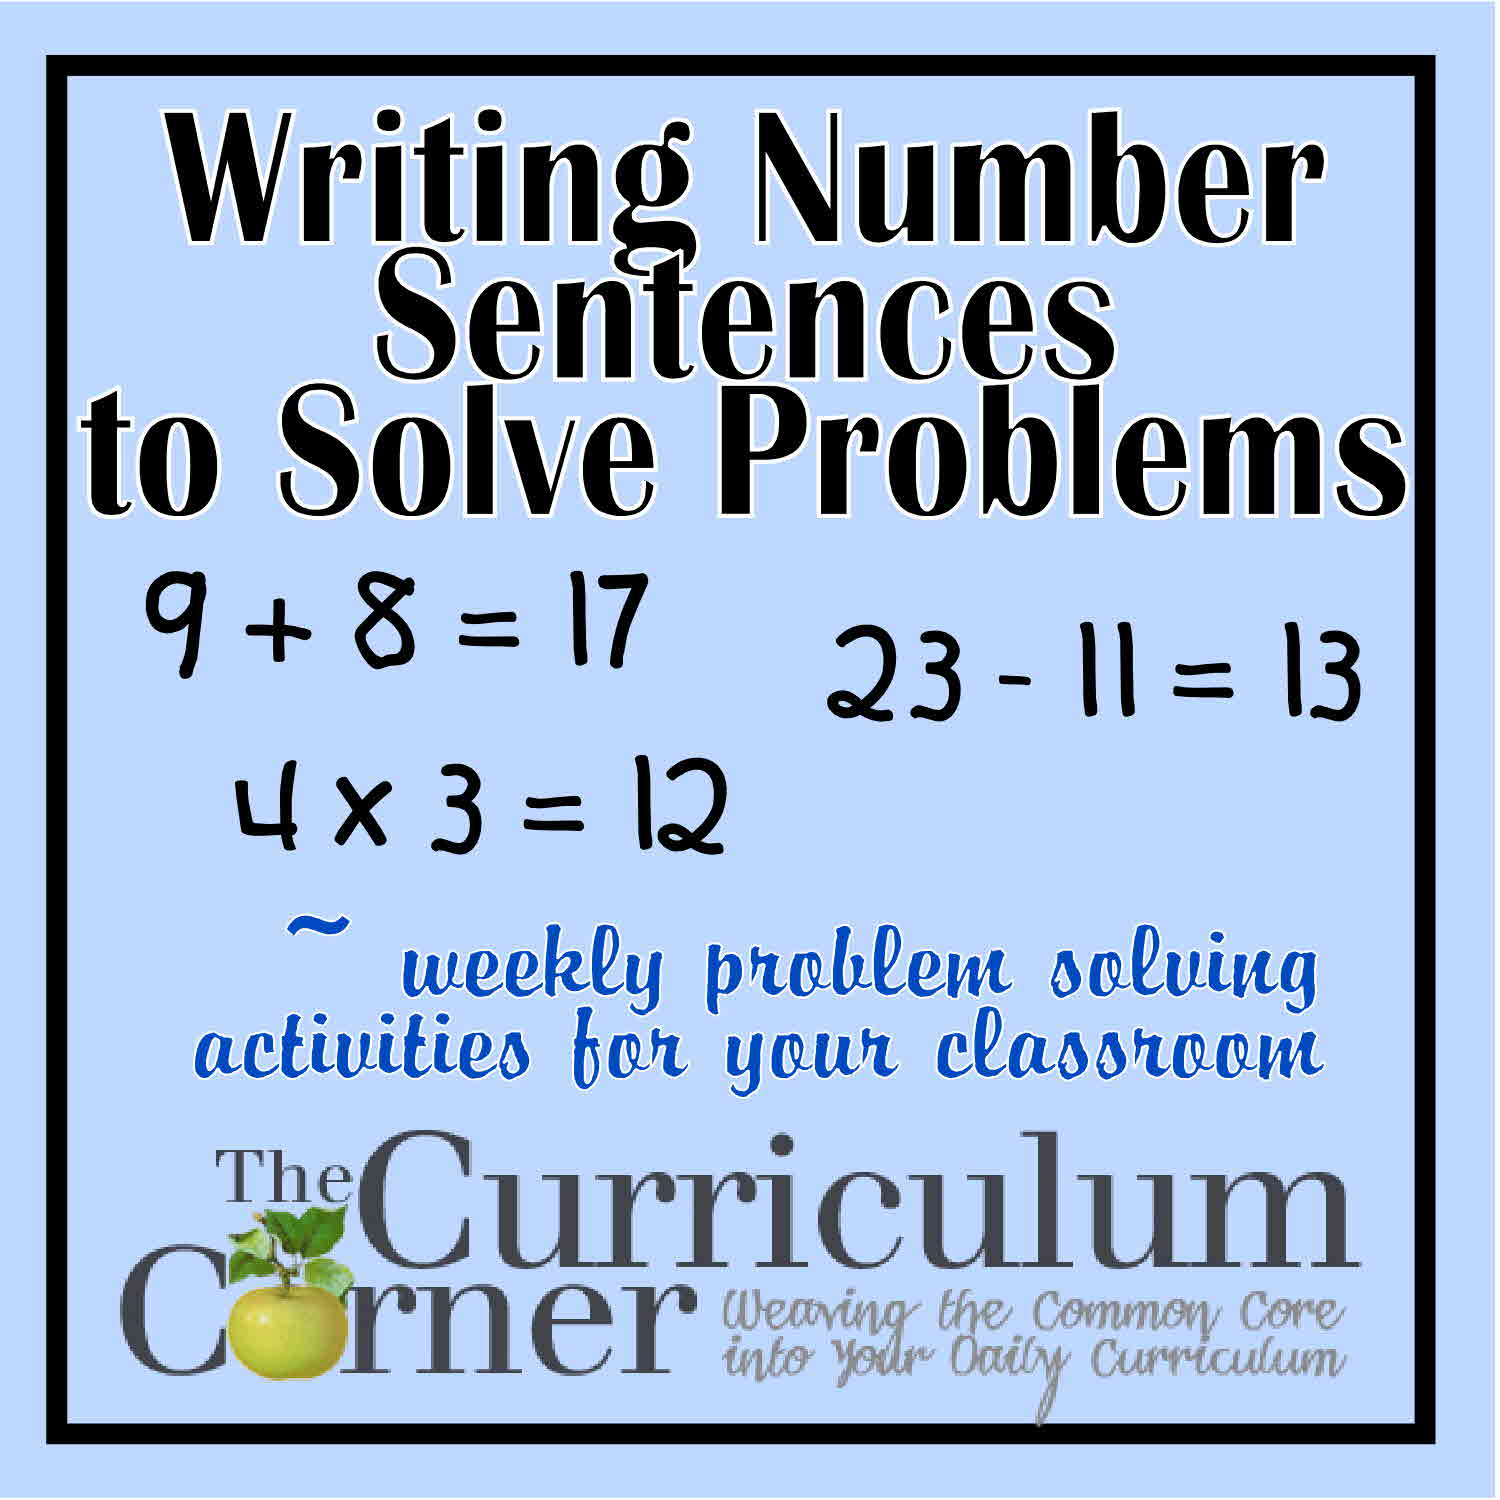 Writing Number Sentences To Solve Problems